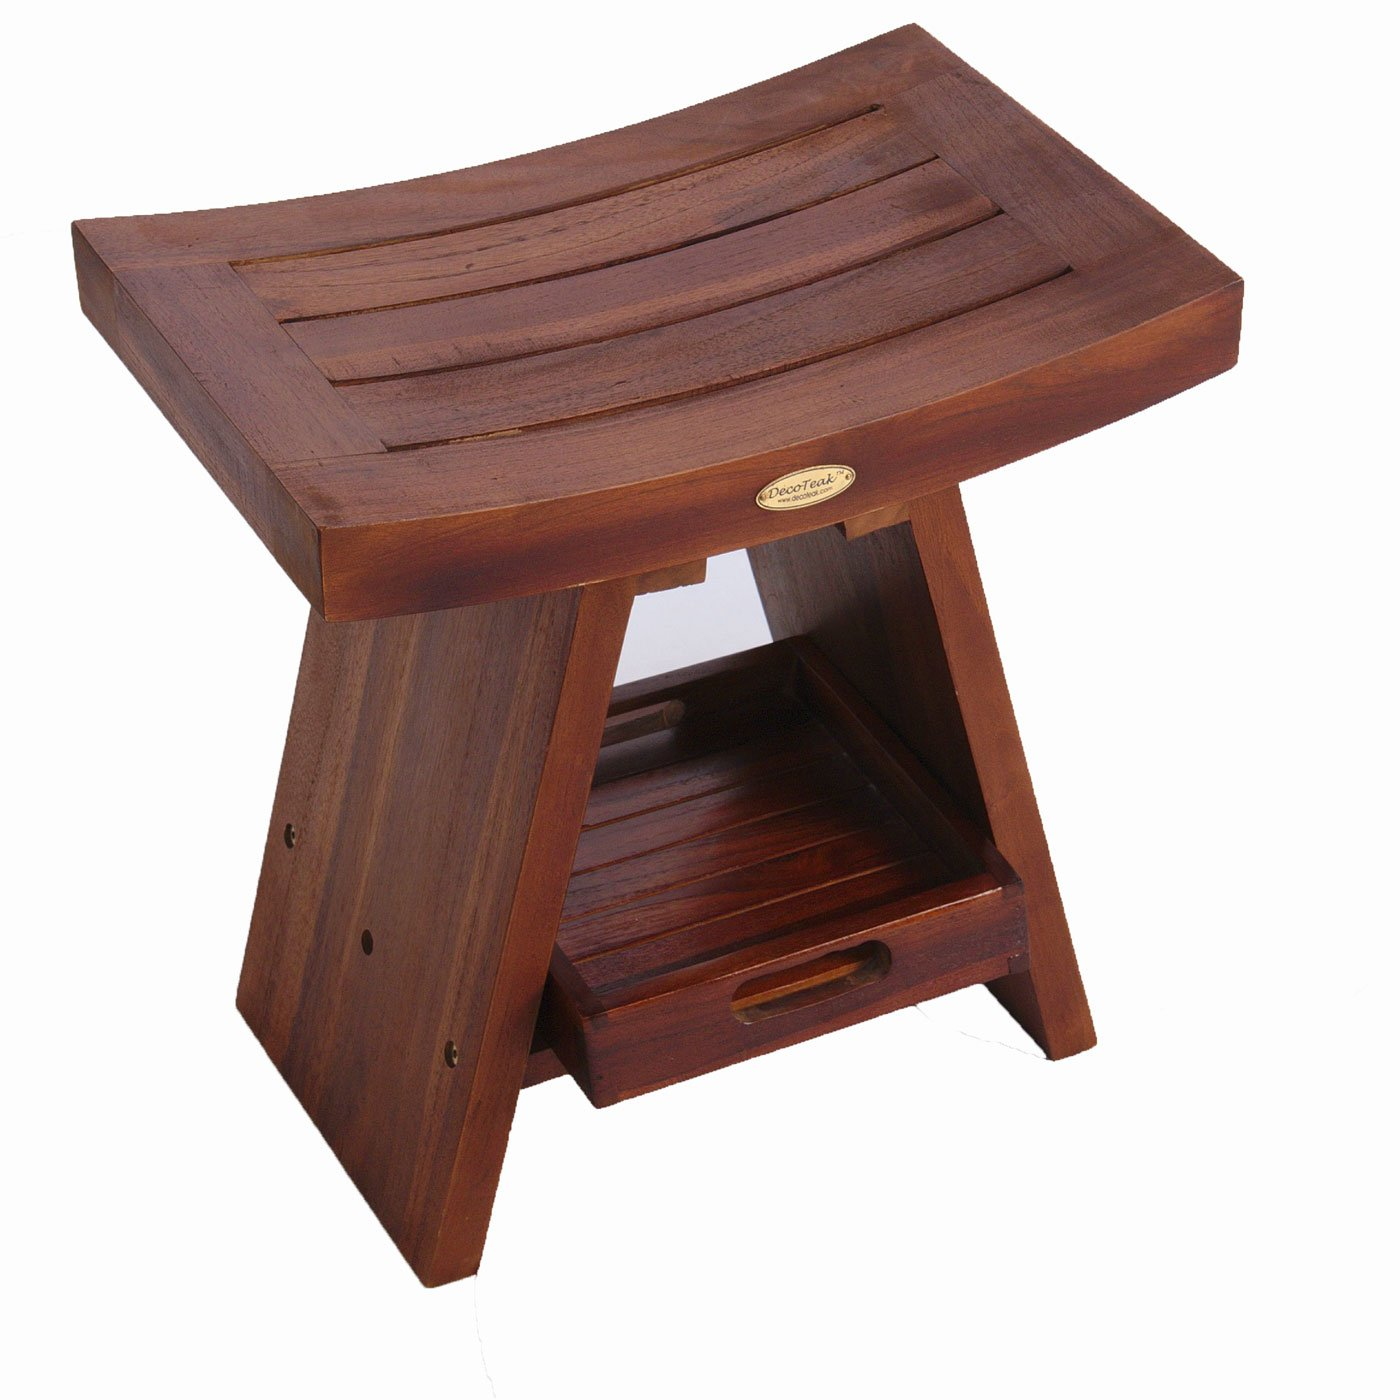 Patented FULLY ASSEMBLED Eastern Style Serenity Teak Shower Bench With Shelf With Integrated Amenity Storage Tray- Sitting, Storage, Shaving, Display